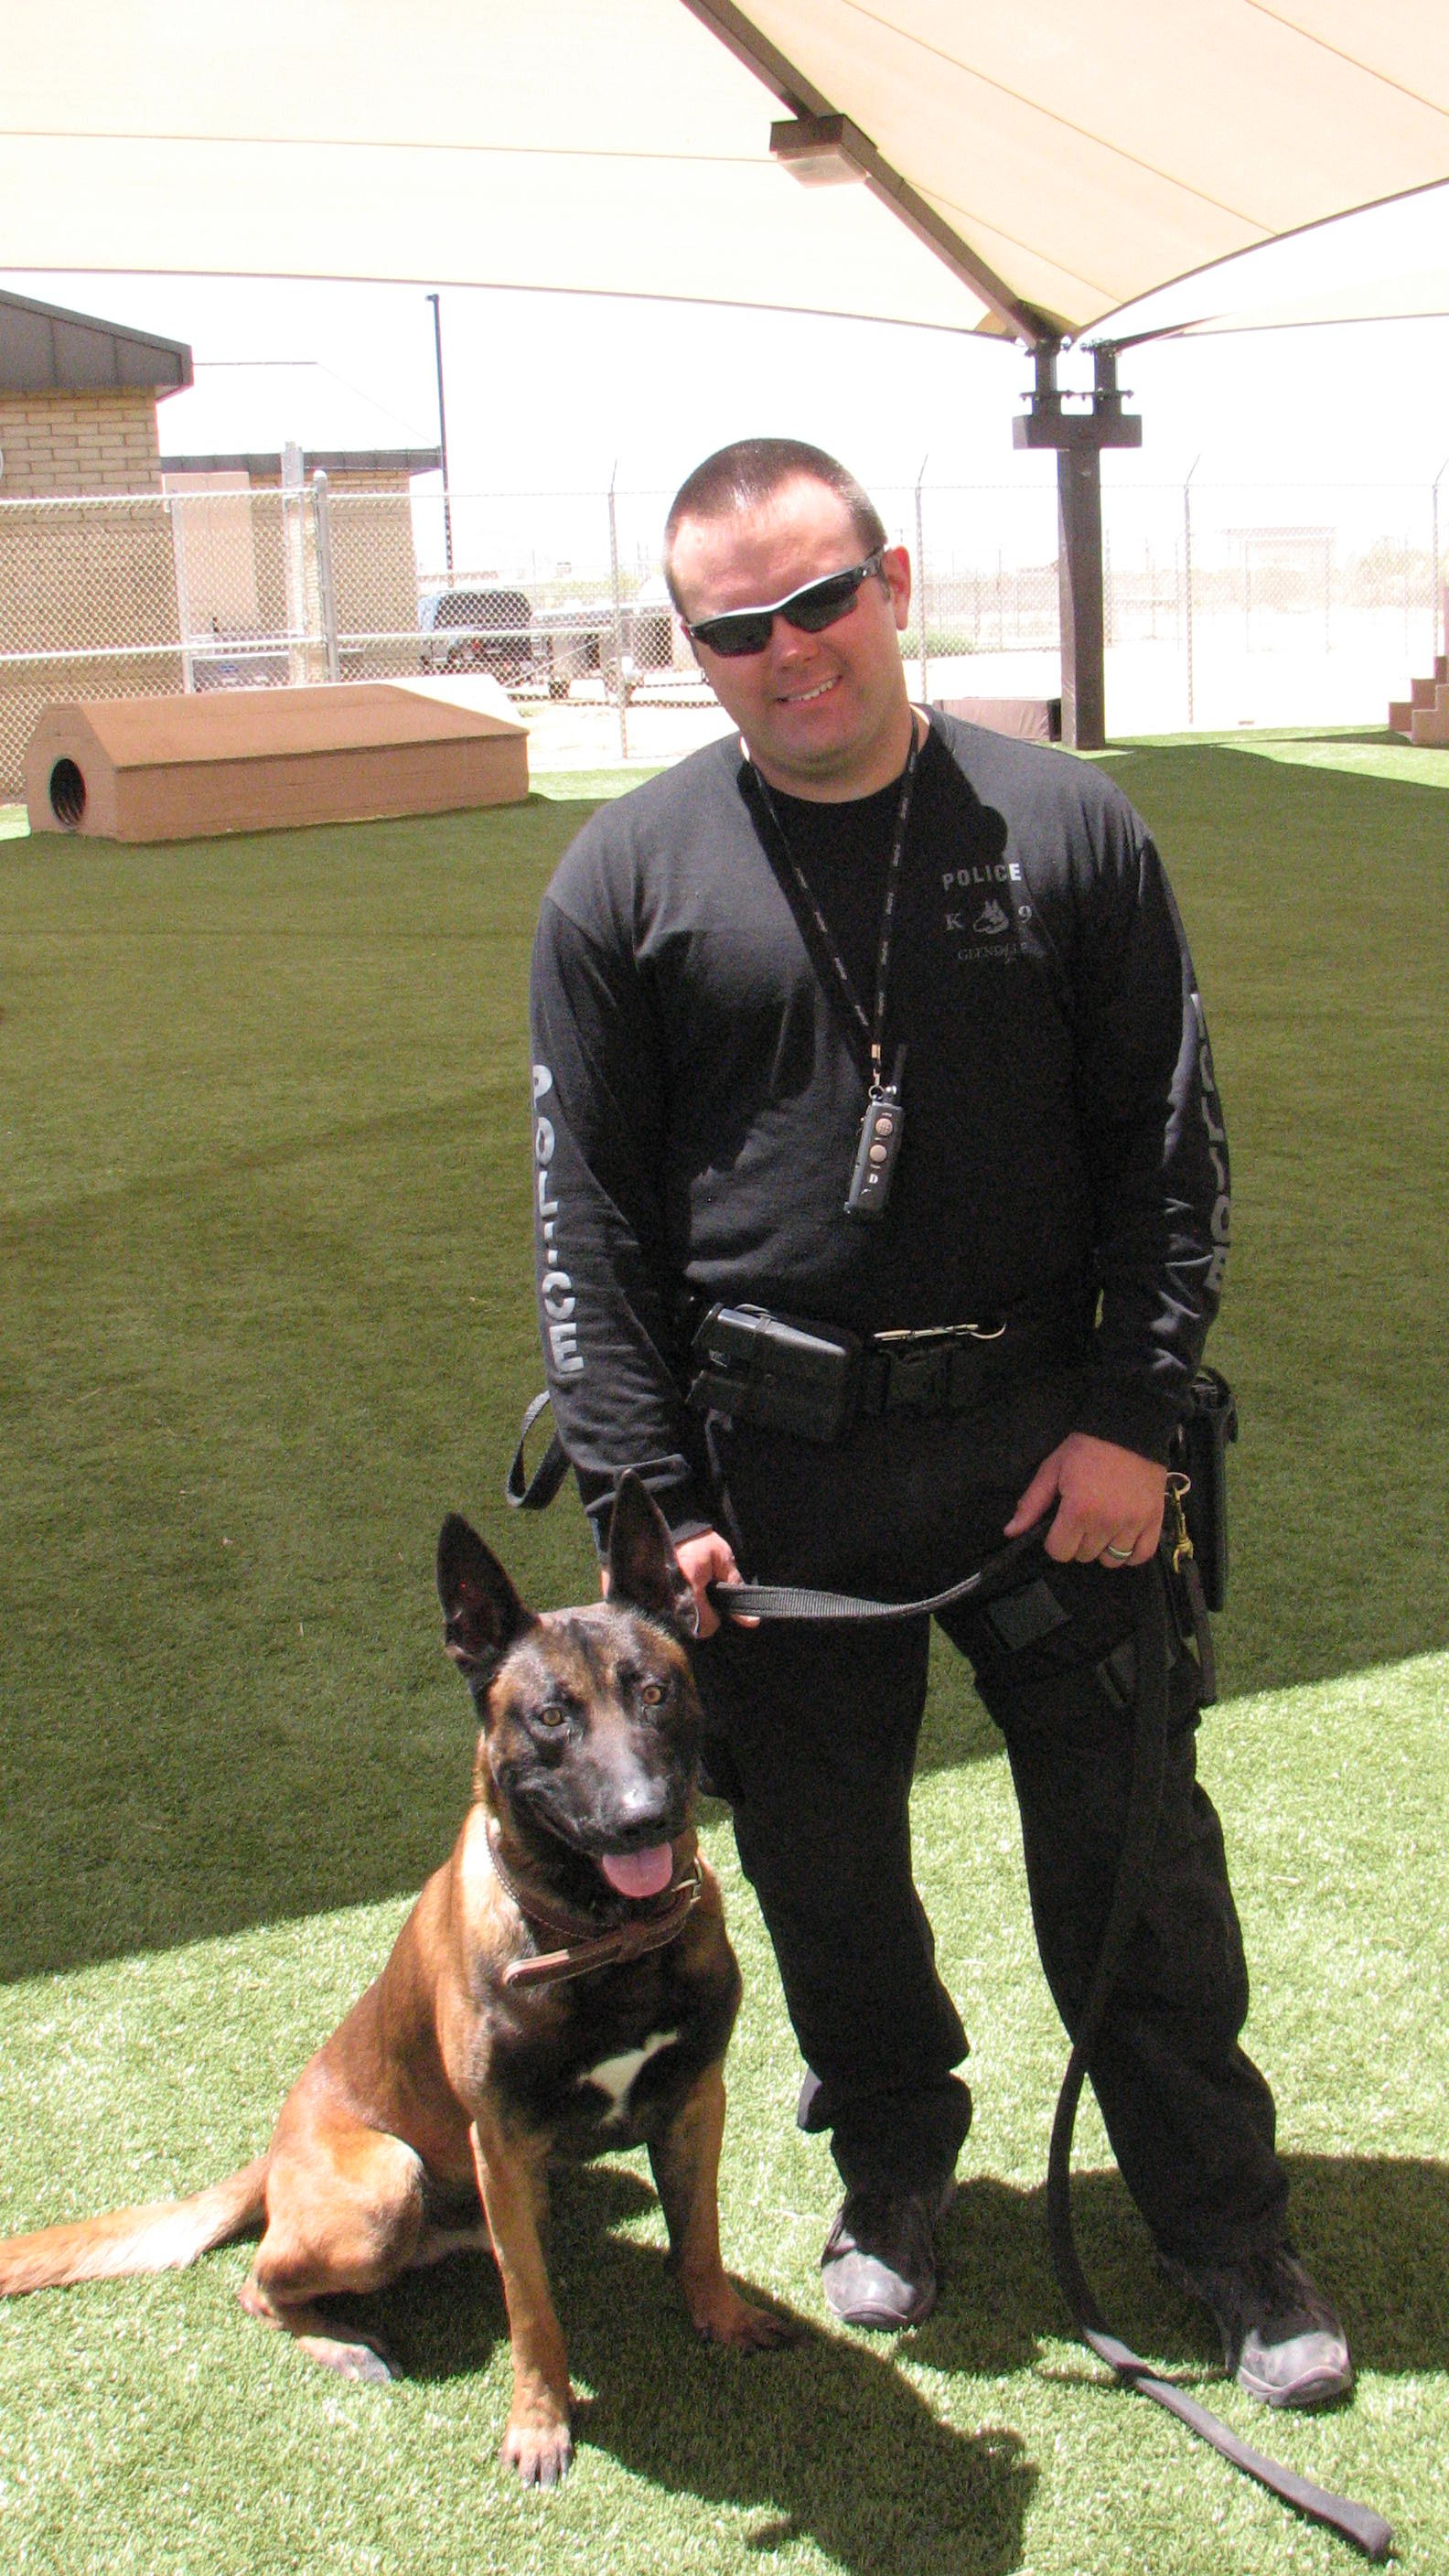 Officer Wes Zygmont with Ronin (Source: Glendale Police Department)